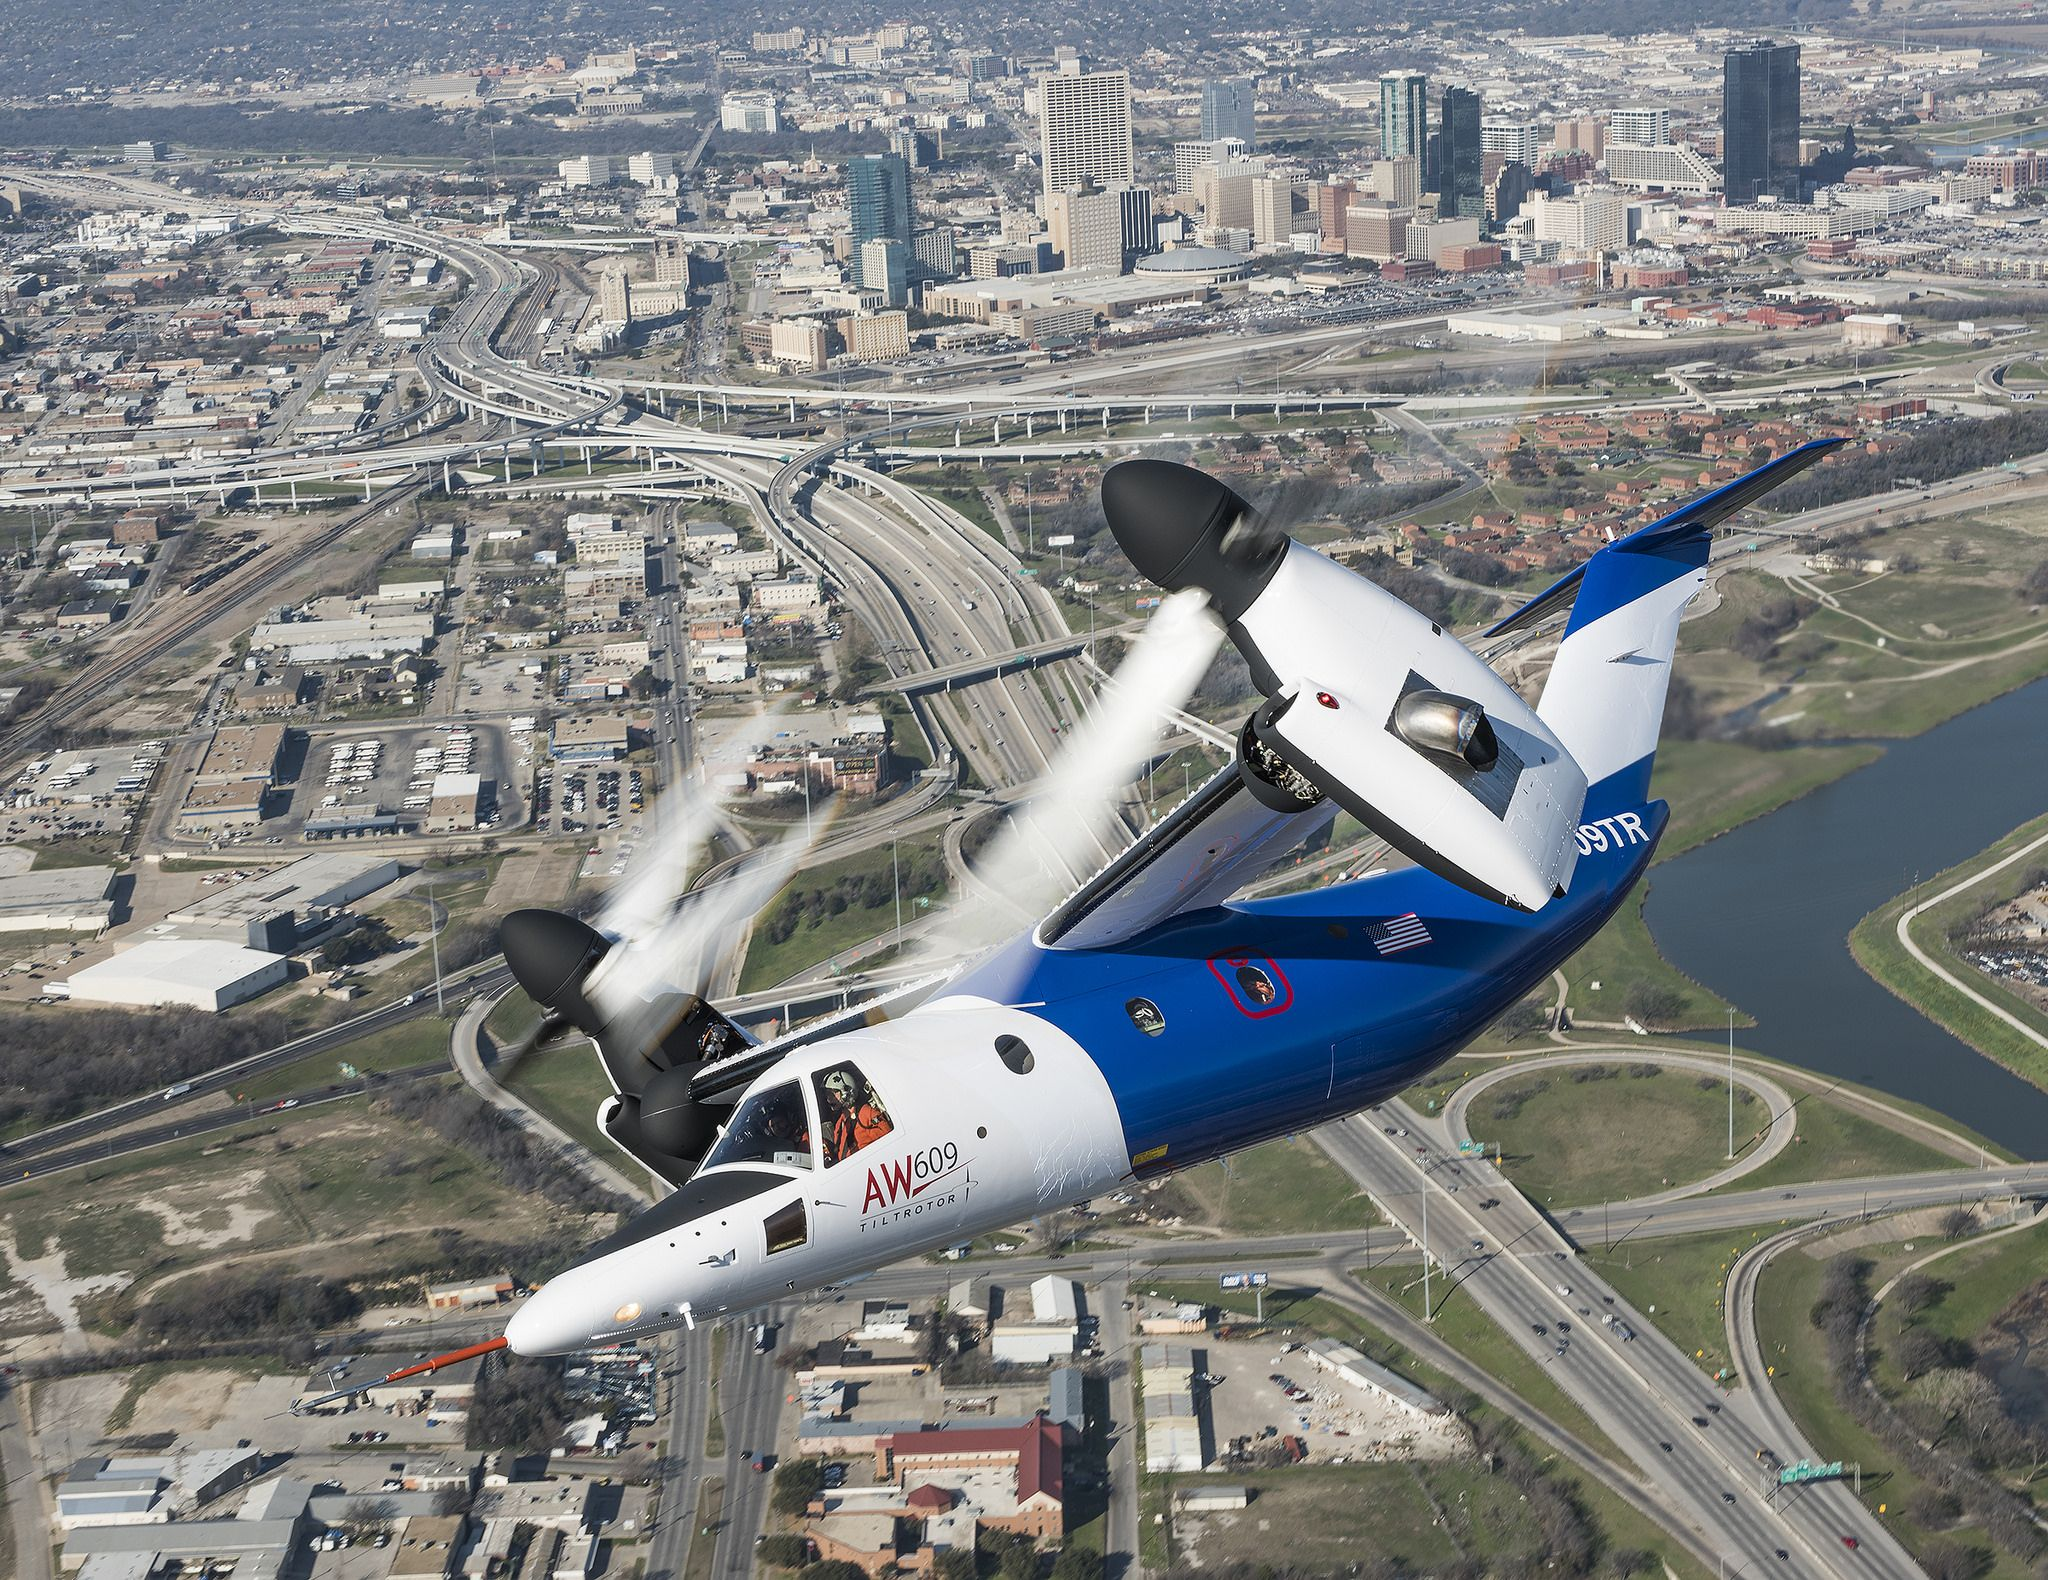 https://flic.kr/p/SG9CSA | AW609 | The unique characteristics of the AW609 TiltRotor combine the benefits of a helicopter and a fixed-wing aircraft into one aircraft www.leonardocompany.com/en/product-services/elicotteri_he...